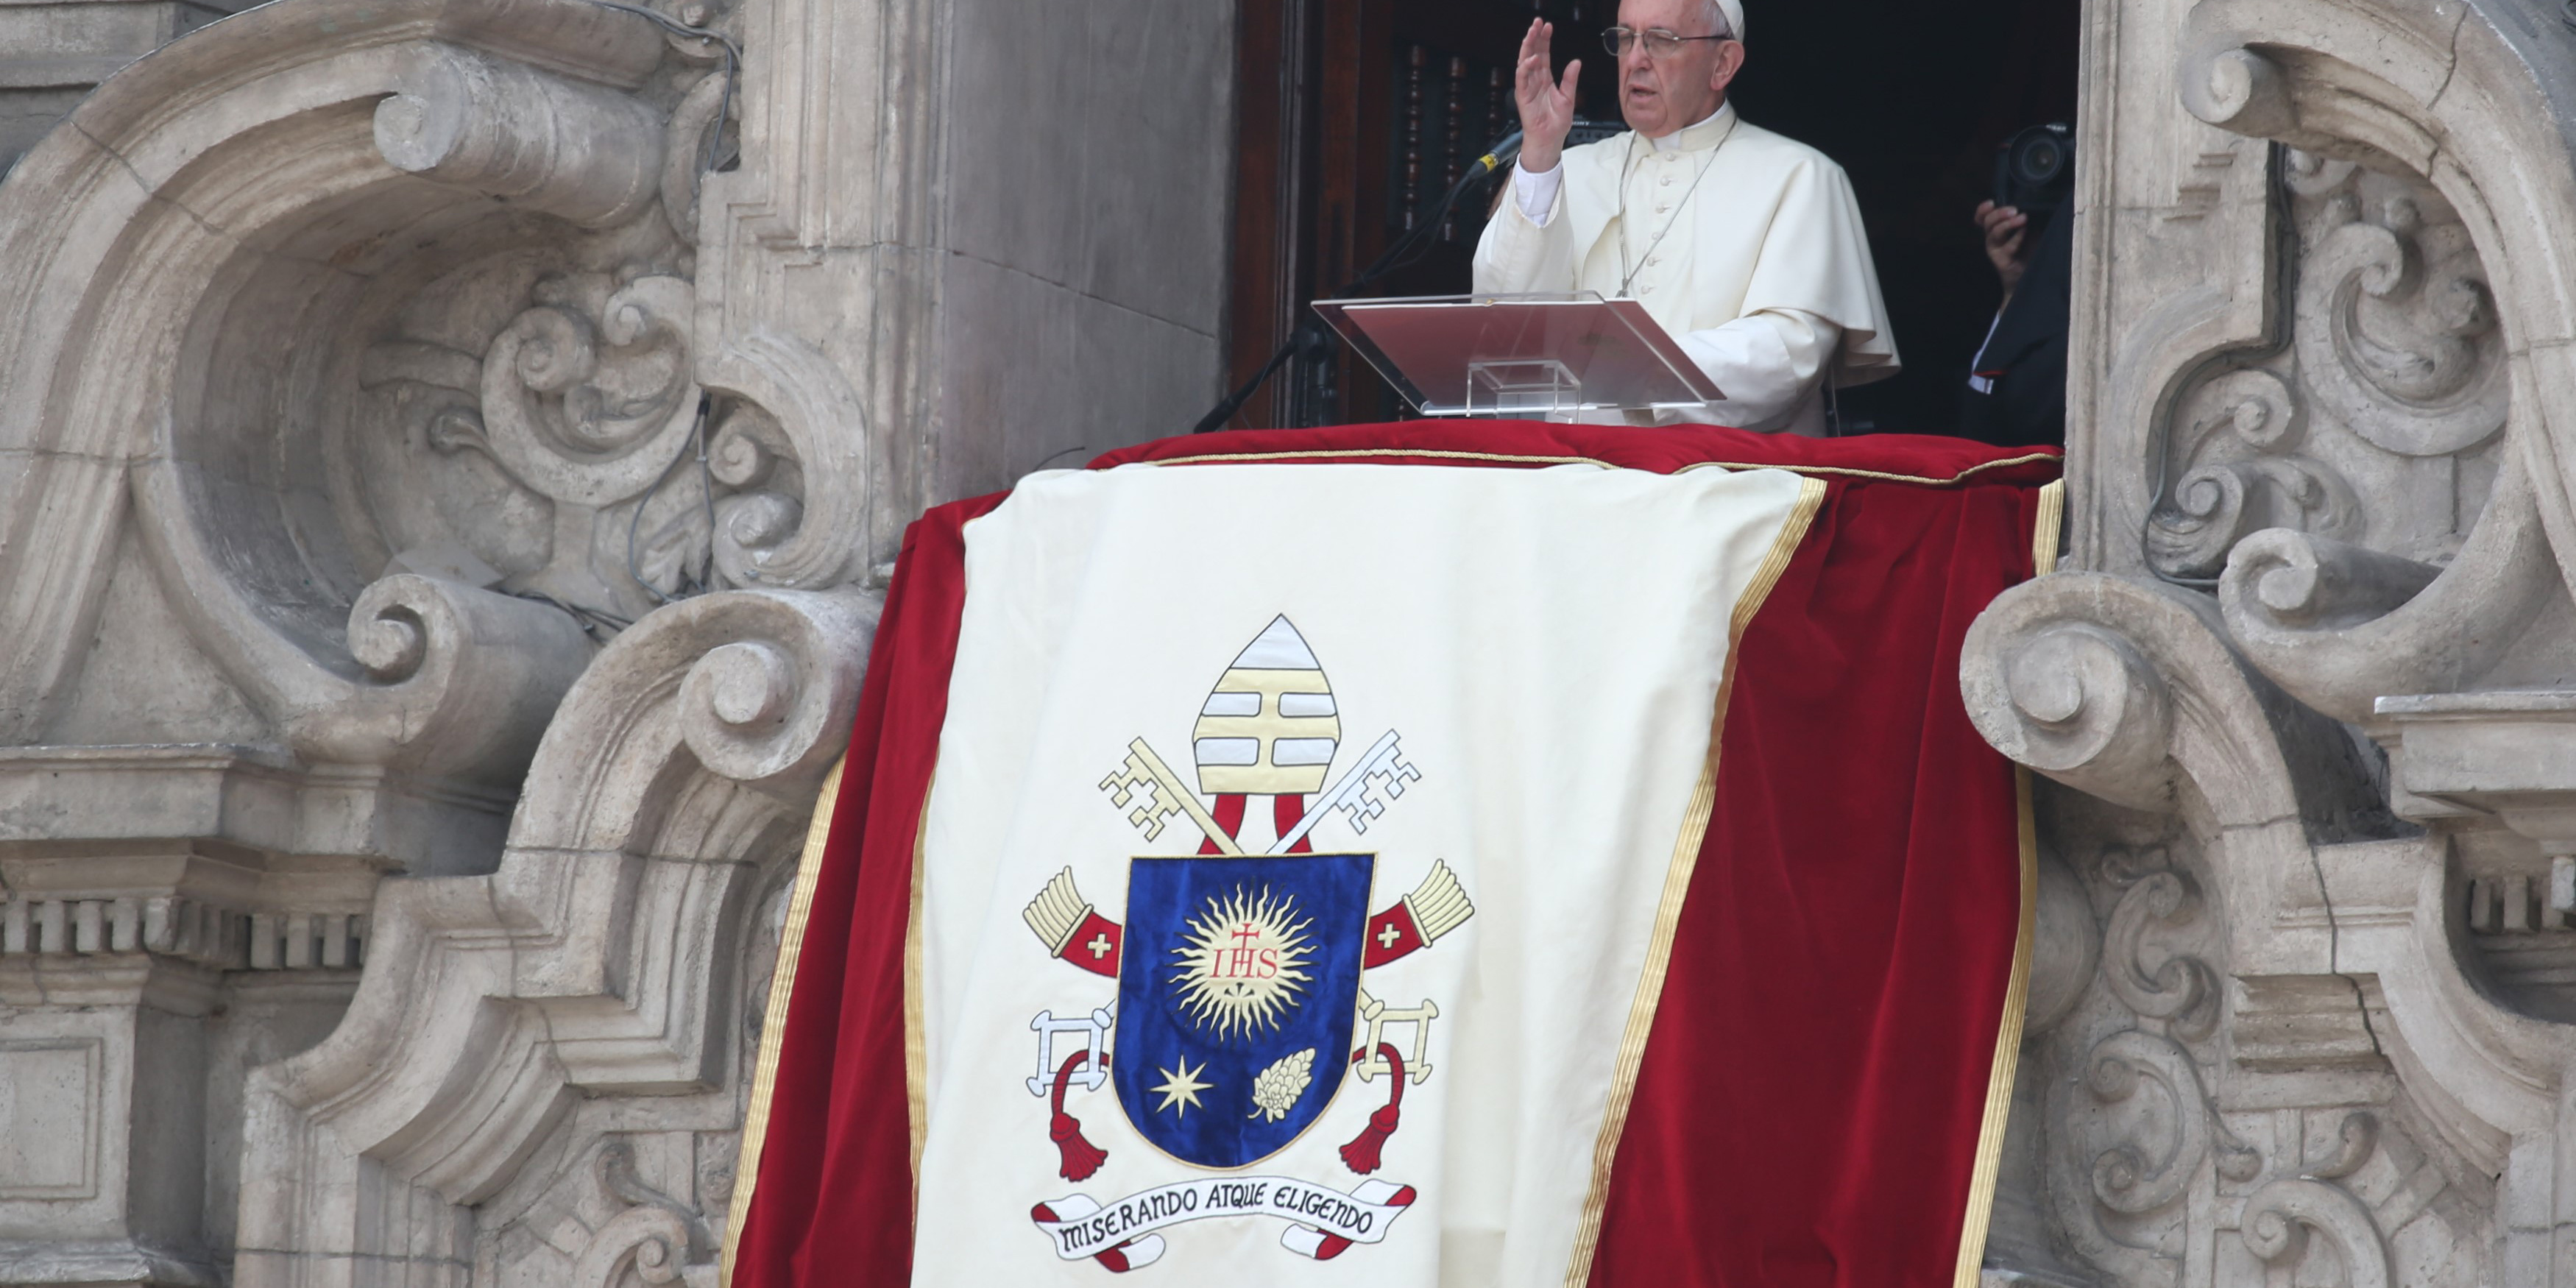 POPE ARMS